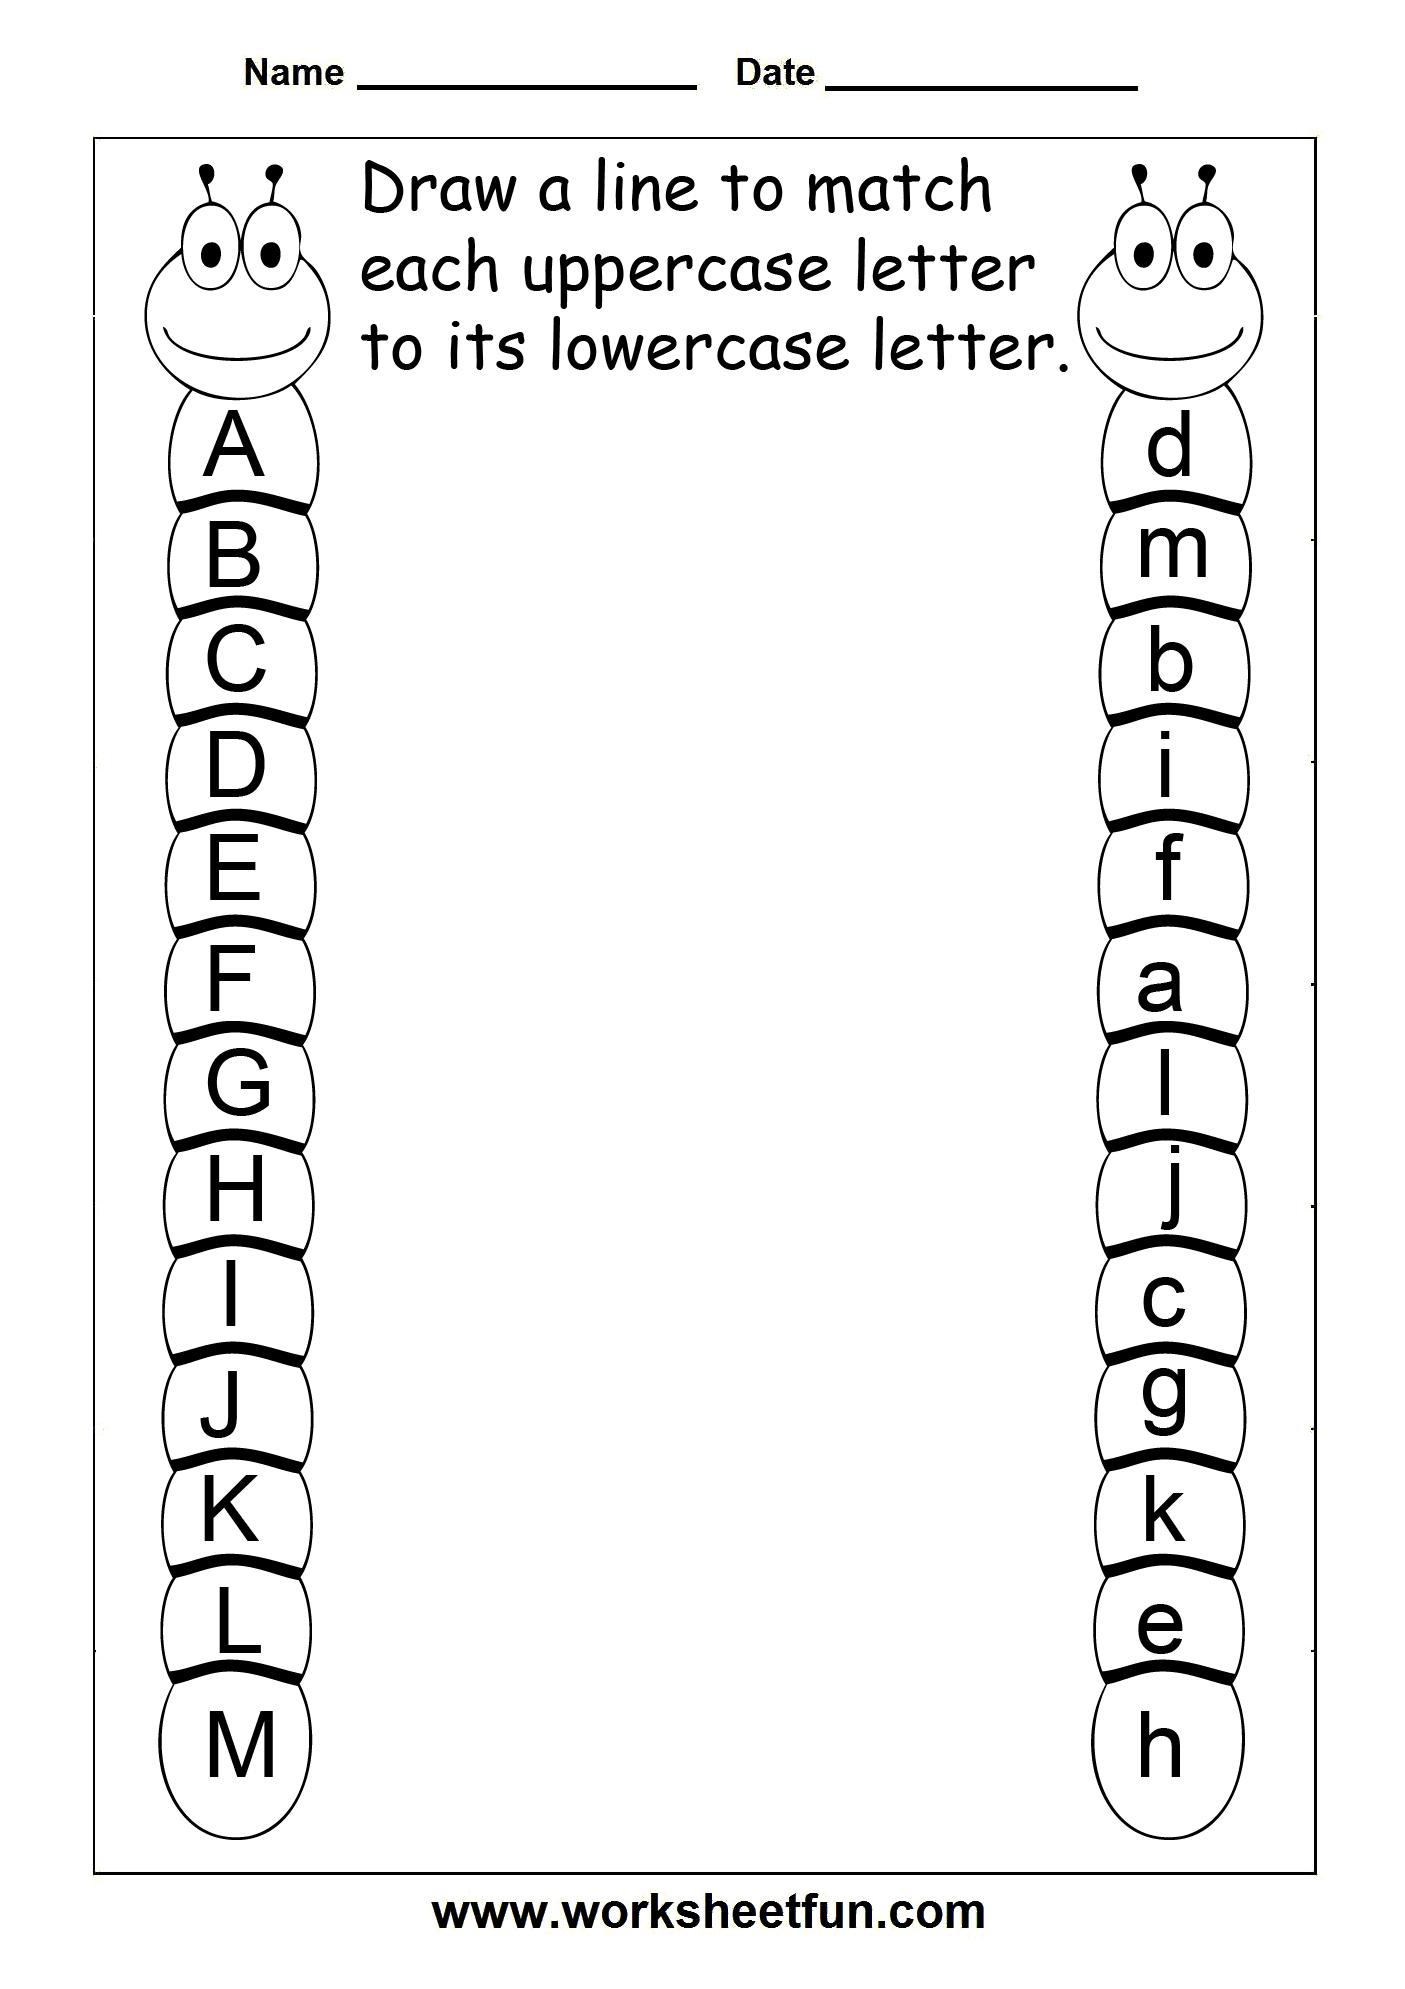 Weirdmailus  Pretty  Images About Work Worksheet On Pinterest  Hidden Pictures  With Goodlooking  Images About Work Worksheet On Pinterest  Hidden Pictures Color By Numbers And Puzzles With Extraordinary Free Printable Math Worksheets Grade  Also Long Division Worksheets And Answers In Addition Heart Worksheets For Kids And Subject Verb Agreement Pdf Worksheets As Well As Worksheets For Therapy Additionally Worksheet On Synonyms From Pinterestcom With Weirdmailus  Goodlooking  Images About Work Worksheet On Pinterest  Hidden Pictures  With Extraordinary  Images About Work Worksheet On Pinterest  Hidden Pictures Color By Numbers And Puzzles And Pretty Free Printable Math Worksheets Grade  Also Long Division Worksheets And Answers In Addition Heart Worksheets For Kids From Pinterestcom